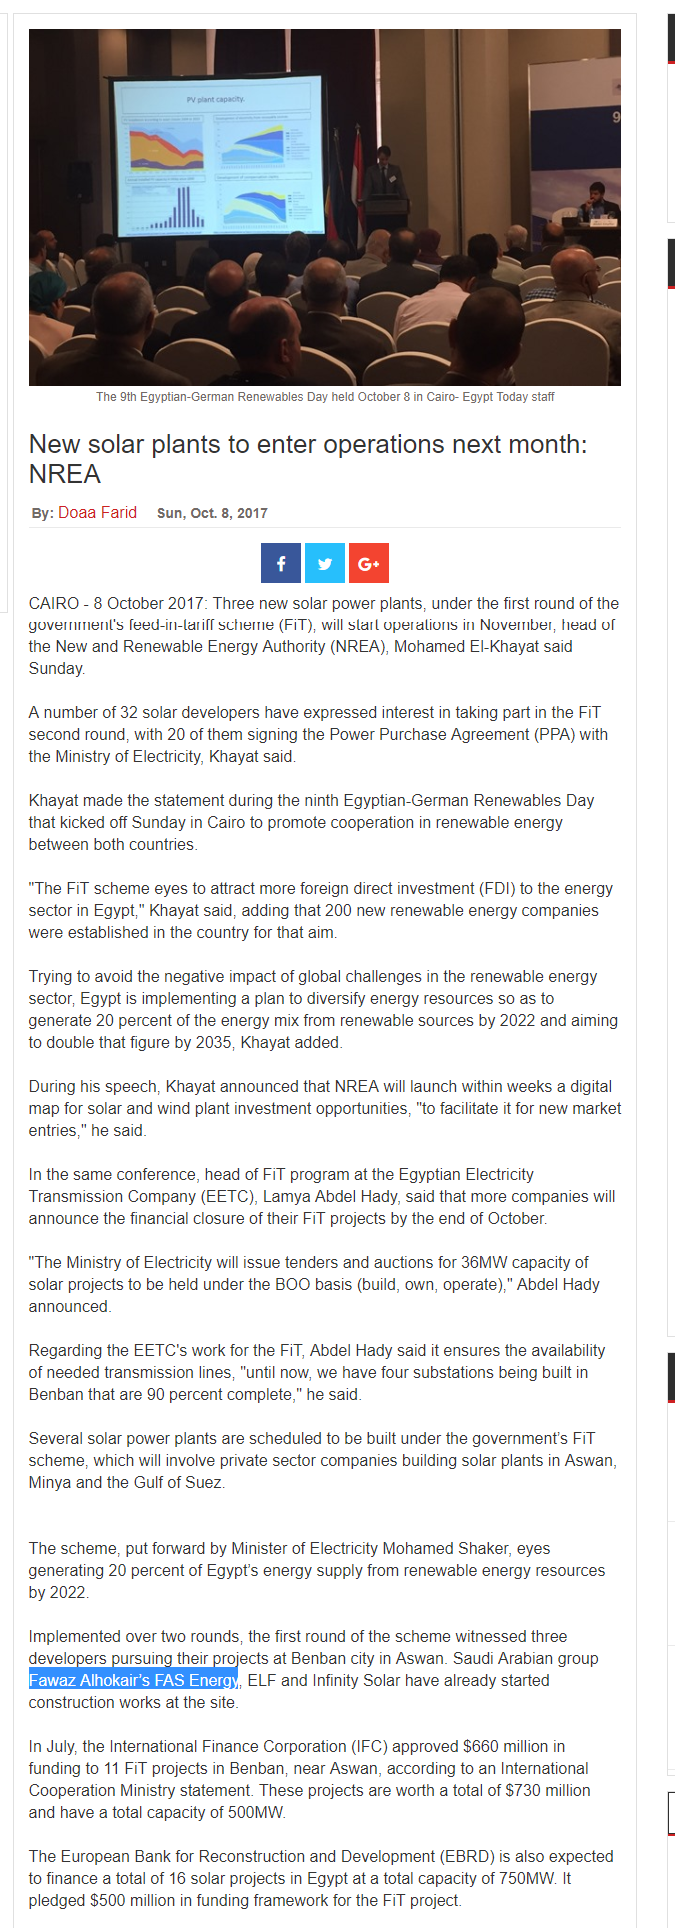 FireShot Capture 441 - New solar plants to enter operations _ - https___www.egypttoday.com_Article.png